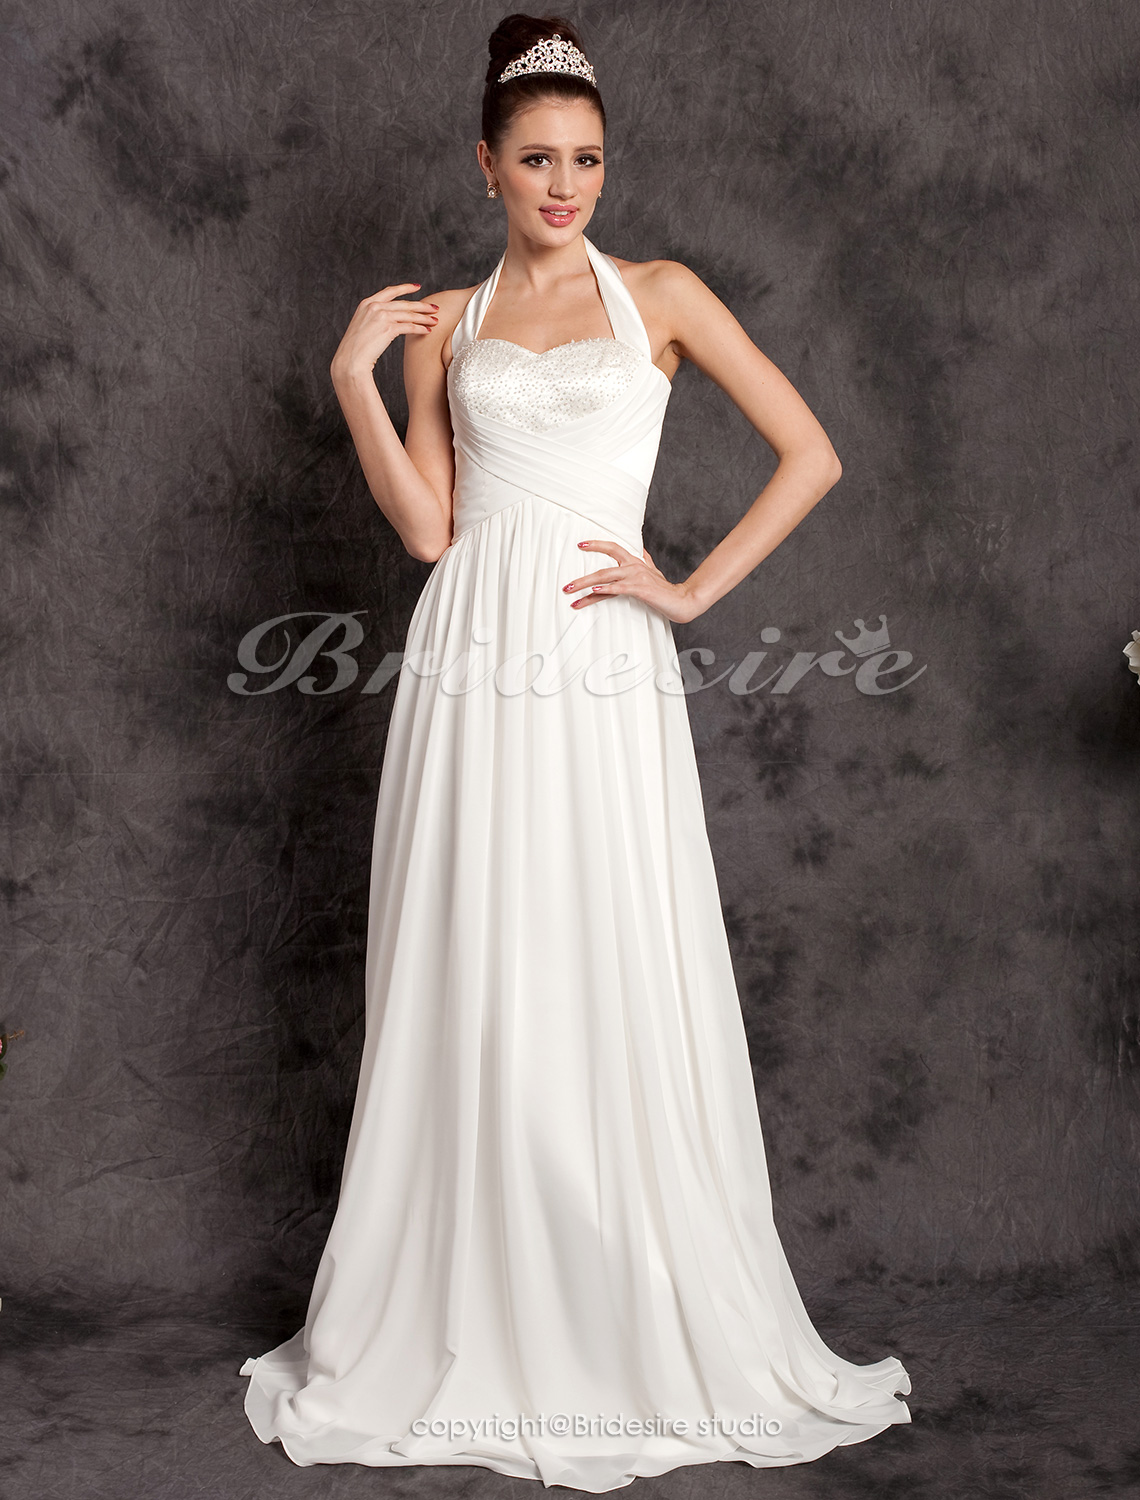 Sheath/Column Chiffon Floor-length Halter Wedding Dress